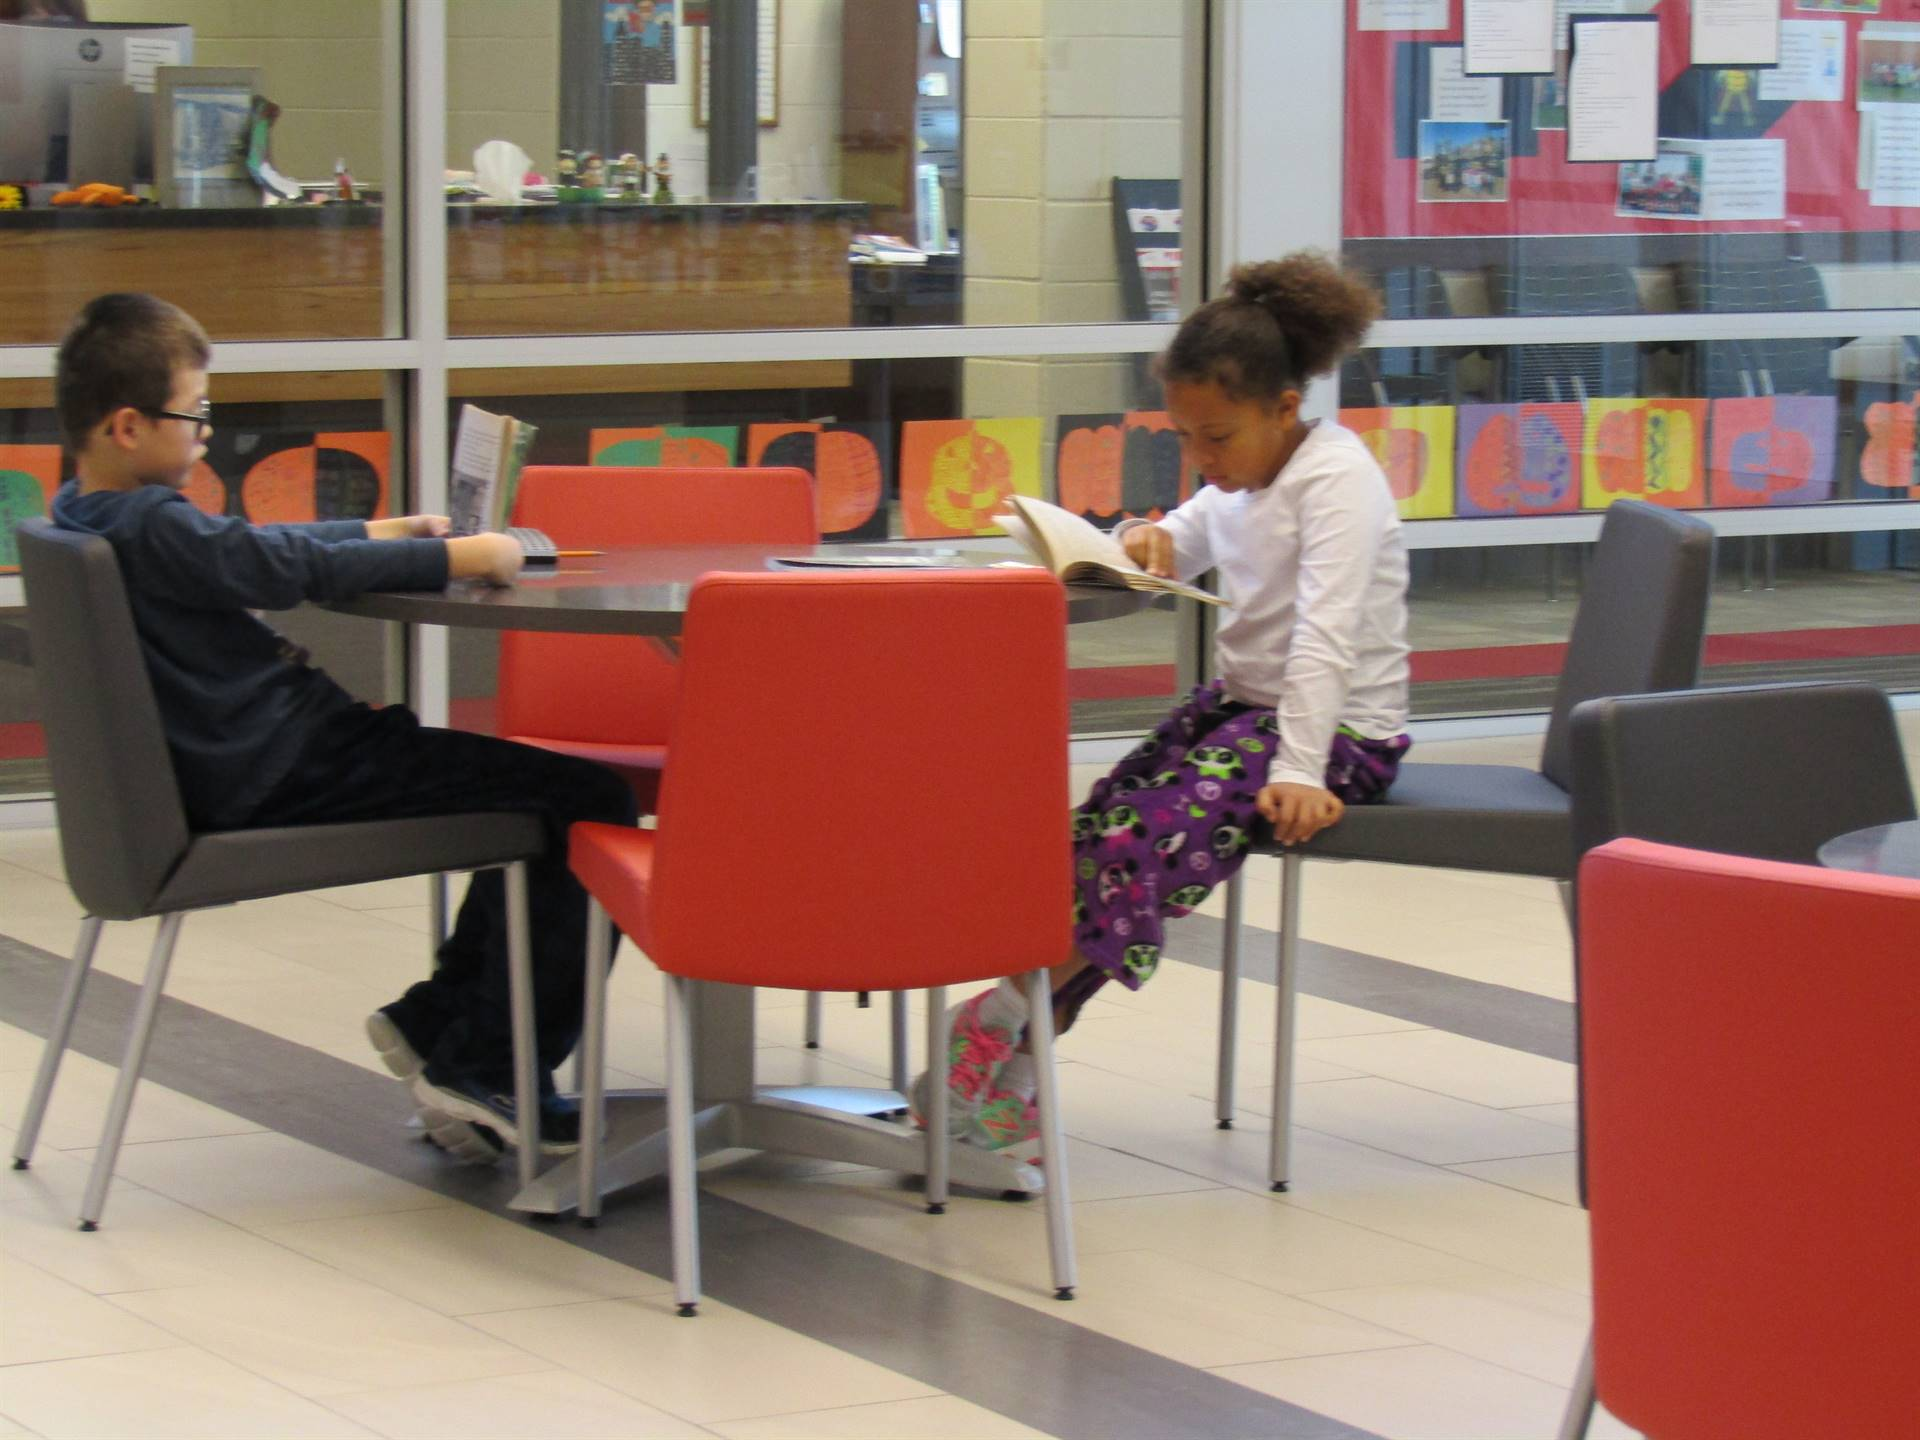 2 students reading in our lobby.